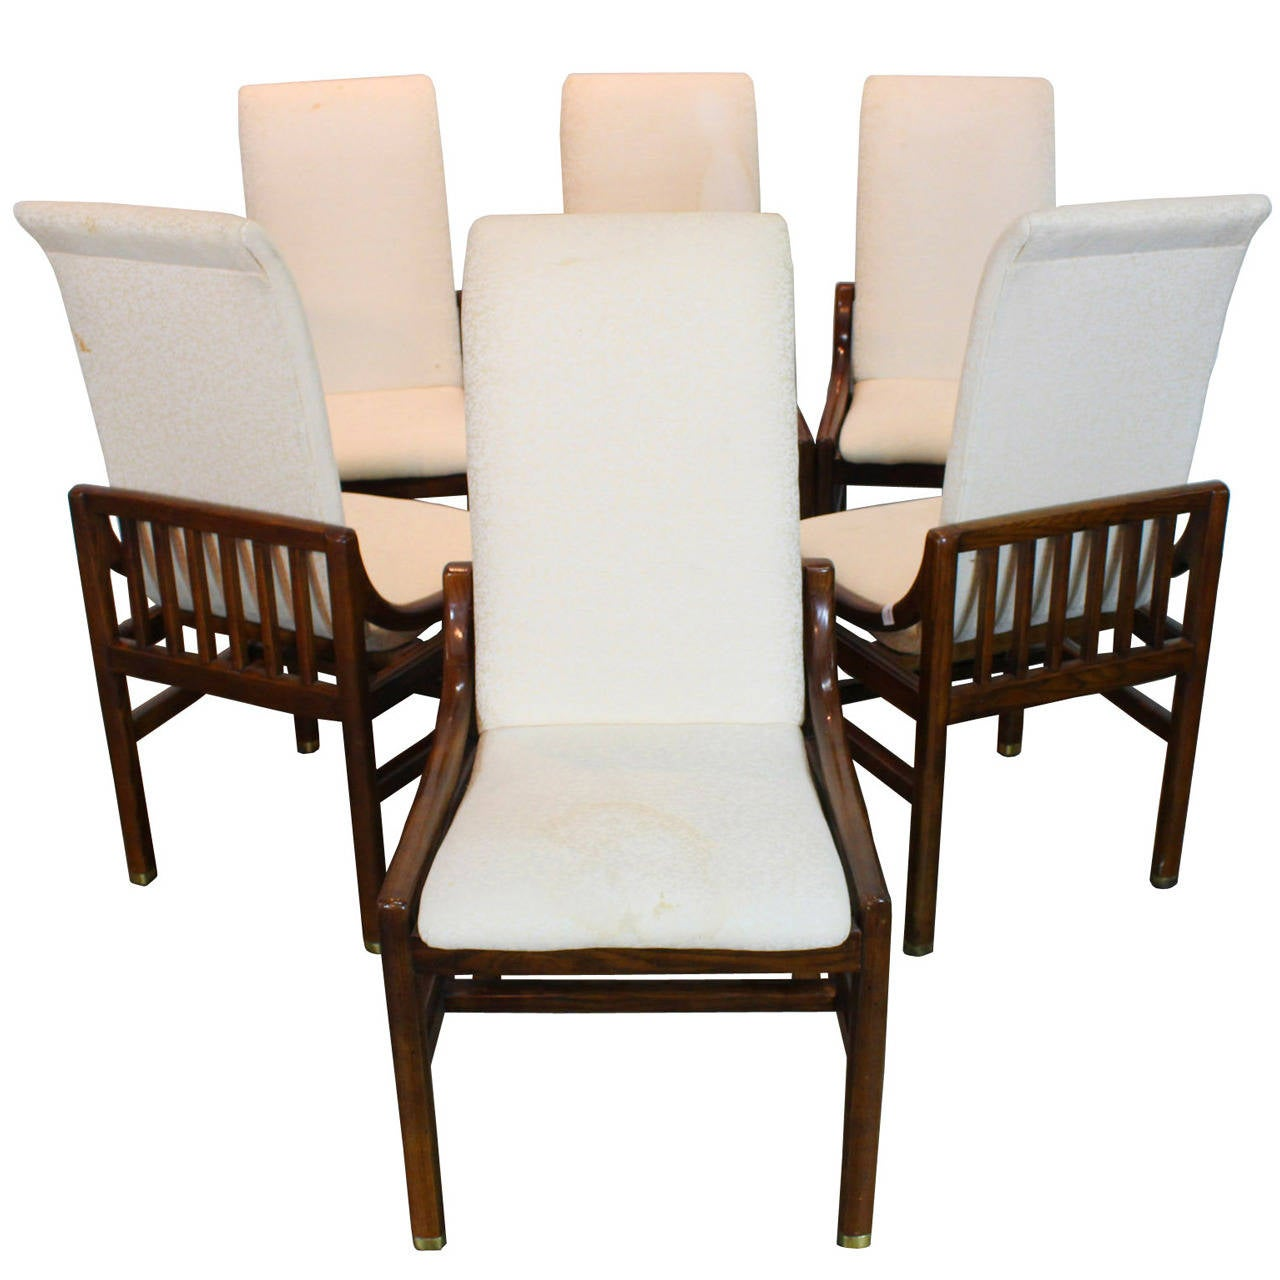 7132cfcd54910 Set of Six Henredon Dining Chairs in Walnut at 1stdibs